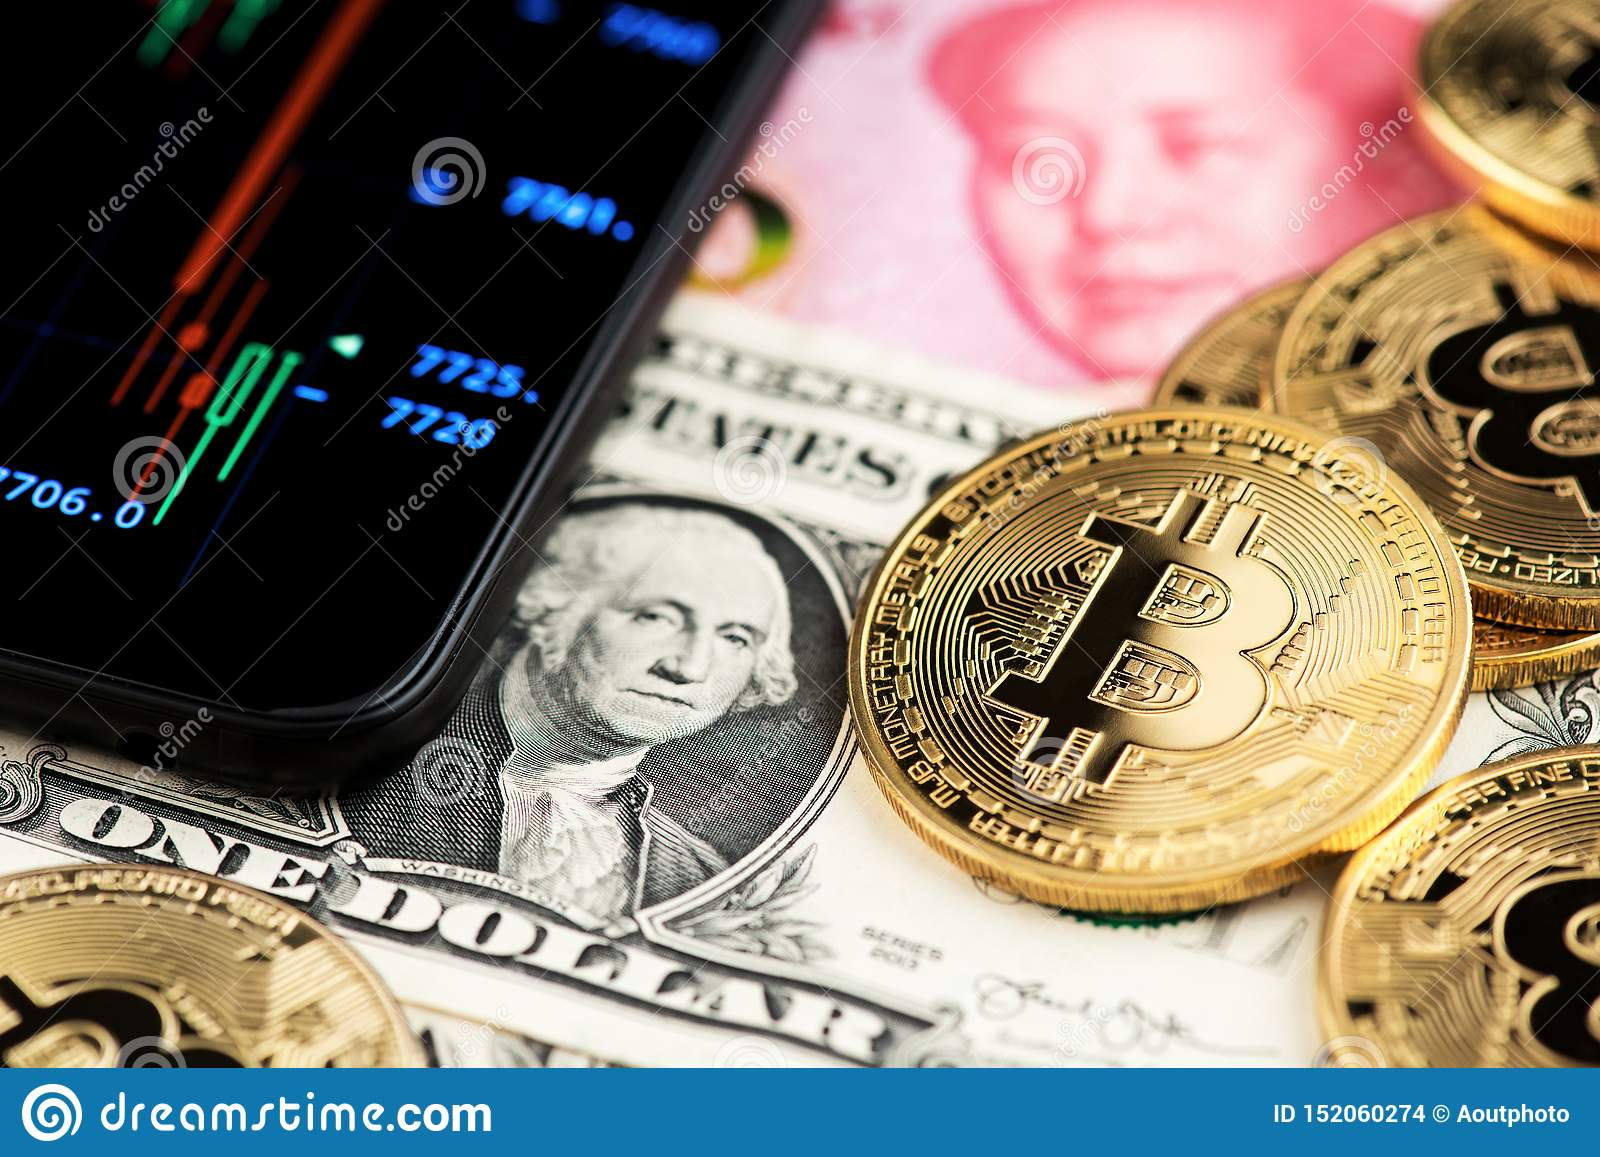 how do you trade in cryptocurrency to american currency